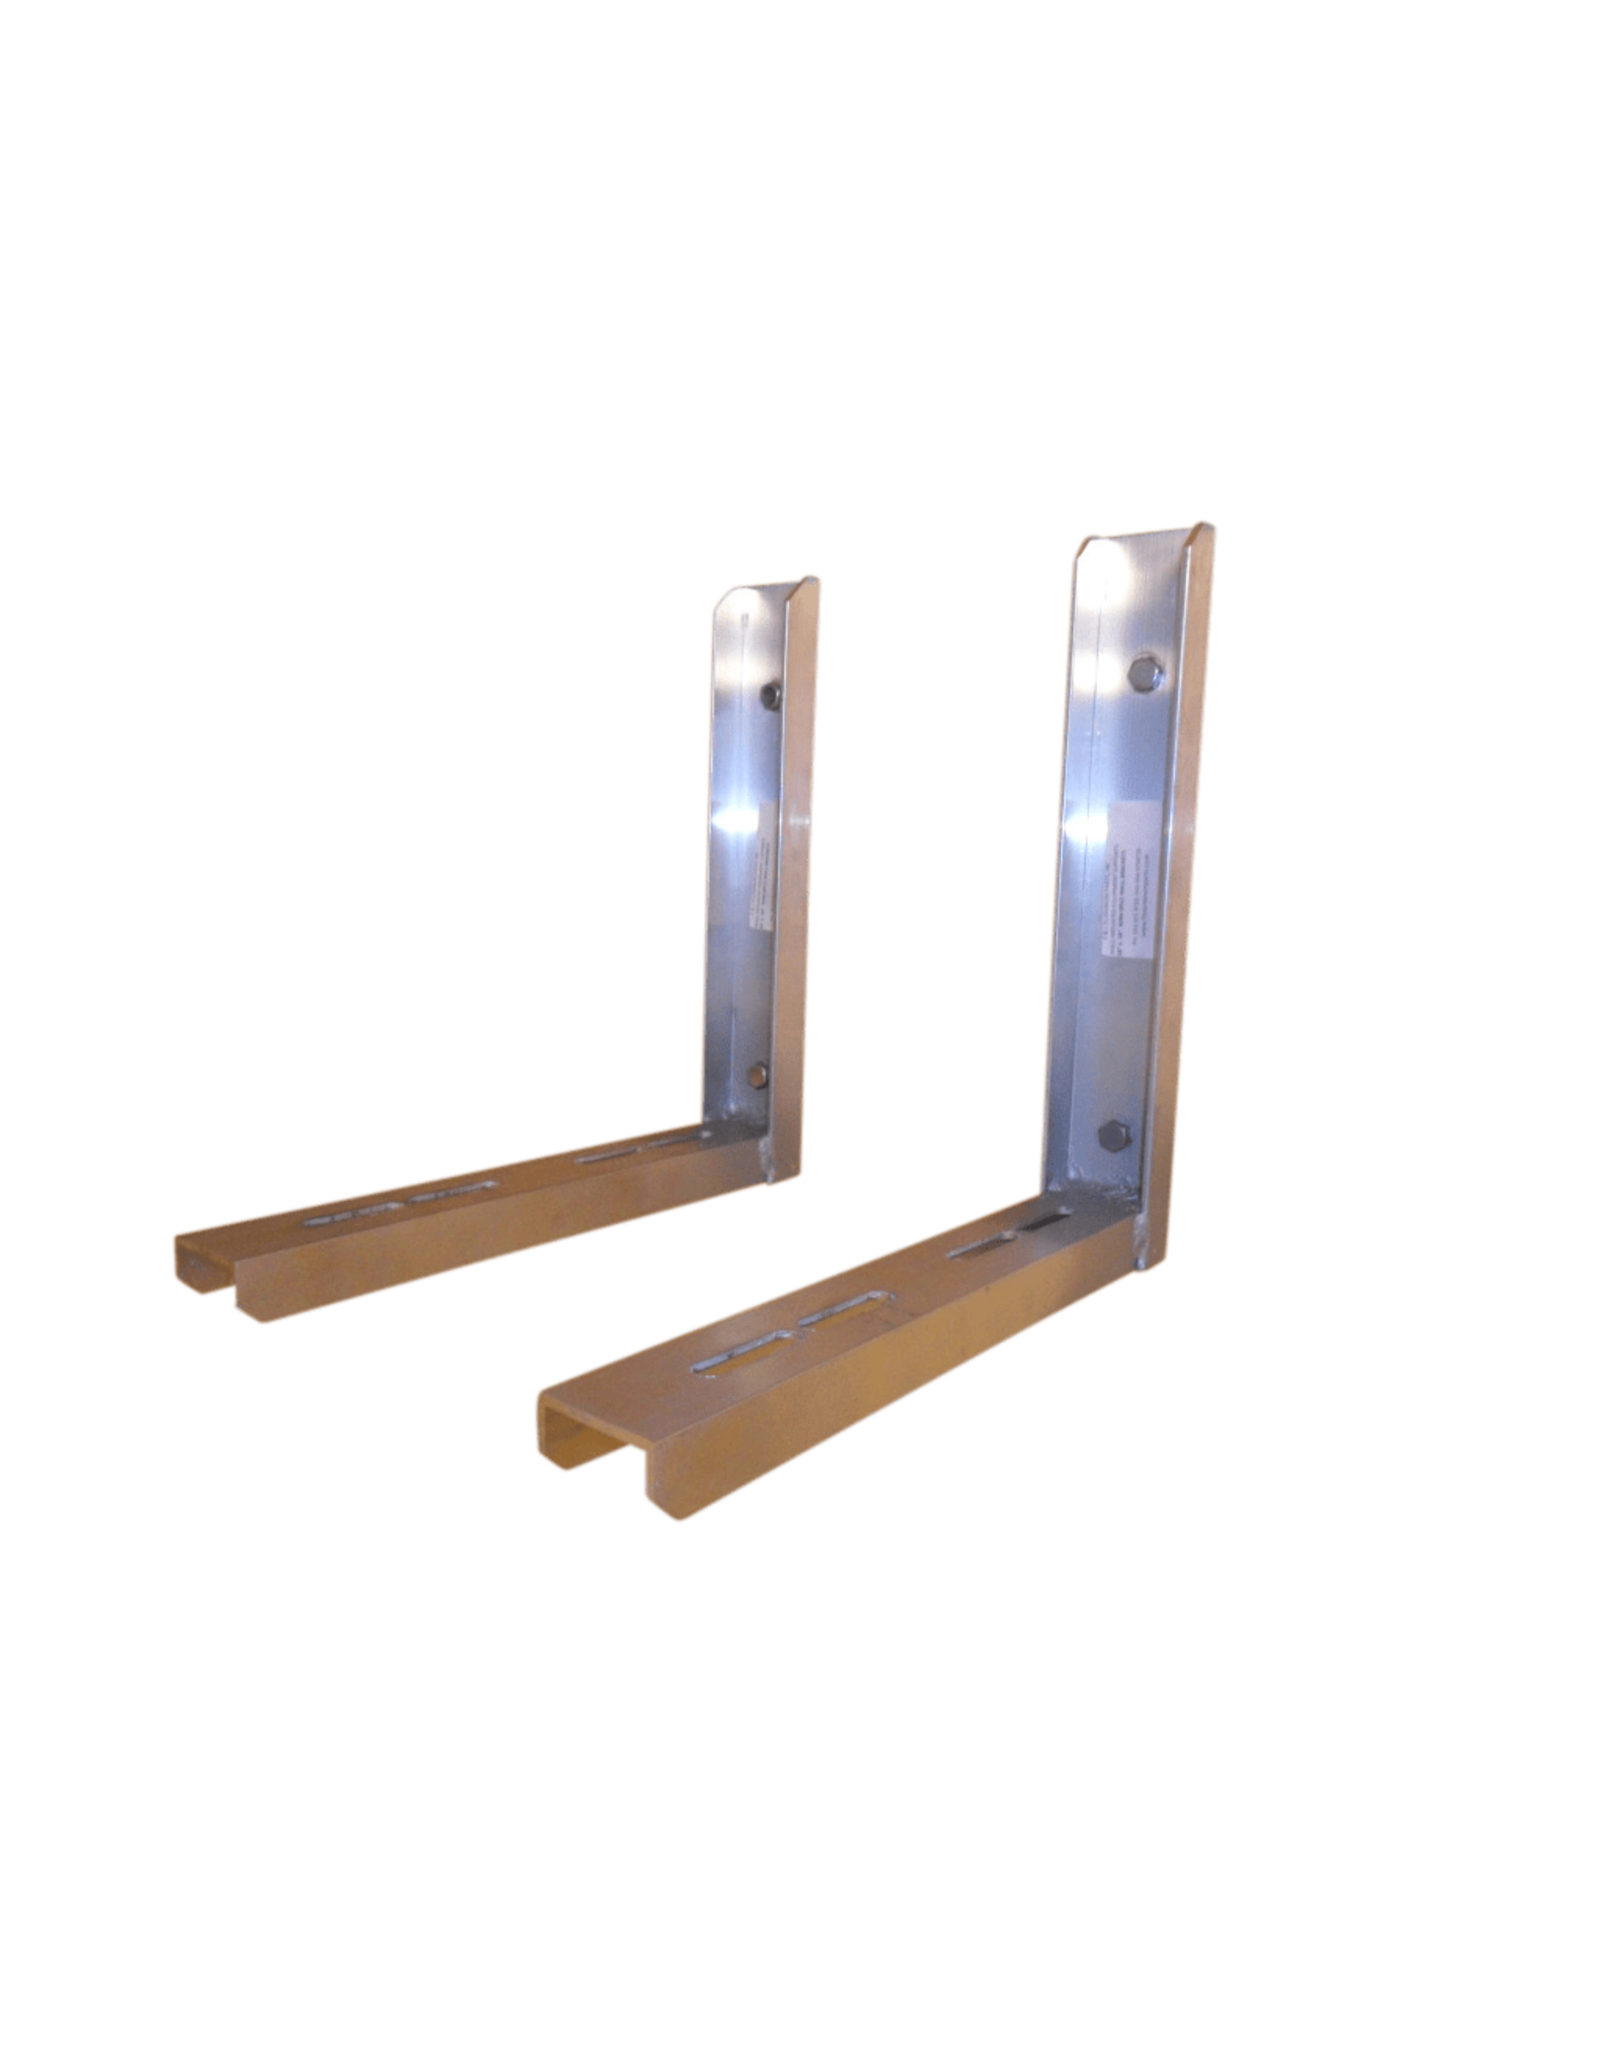 Aluminum Stands NOA Approved Wall Bracket Stand for Mini Split Unit